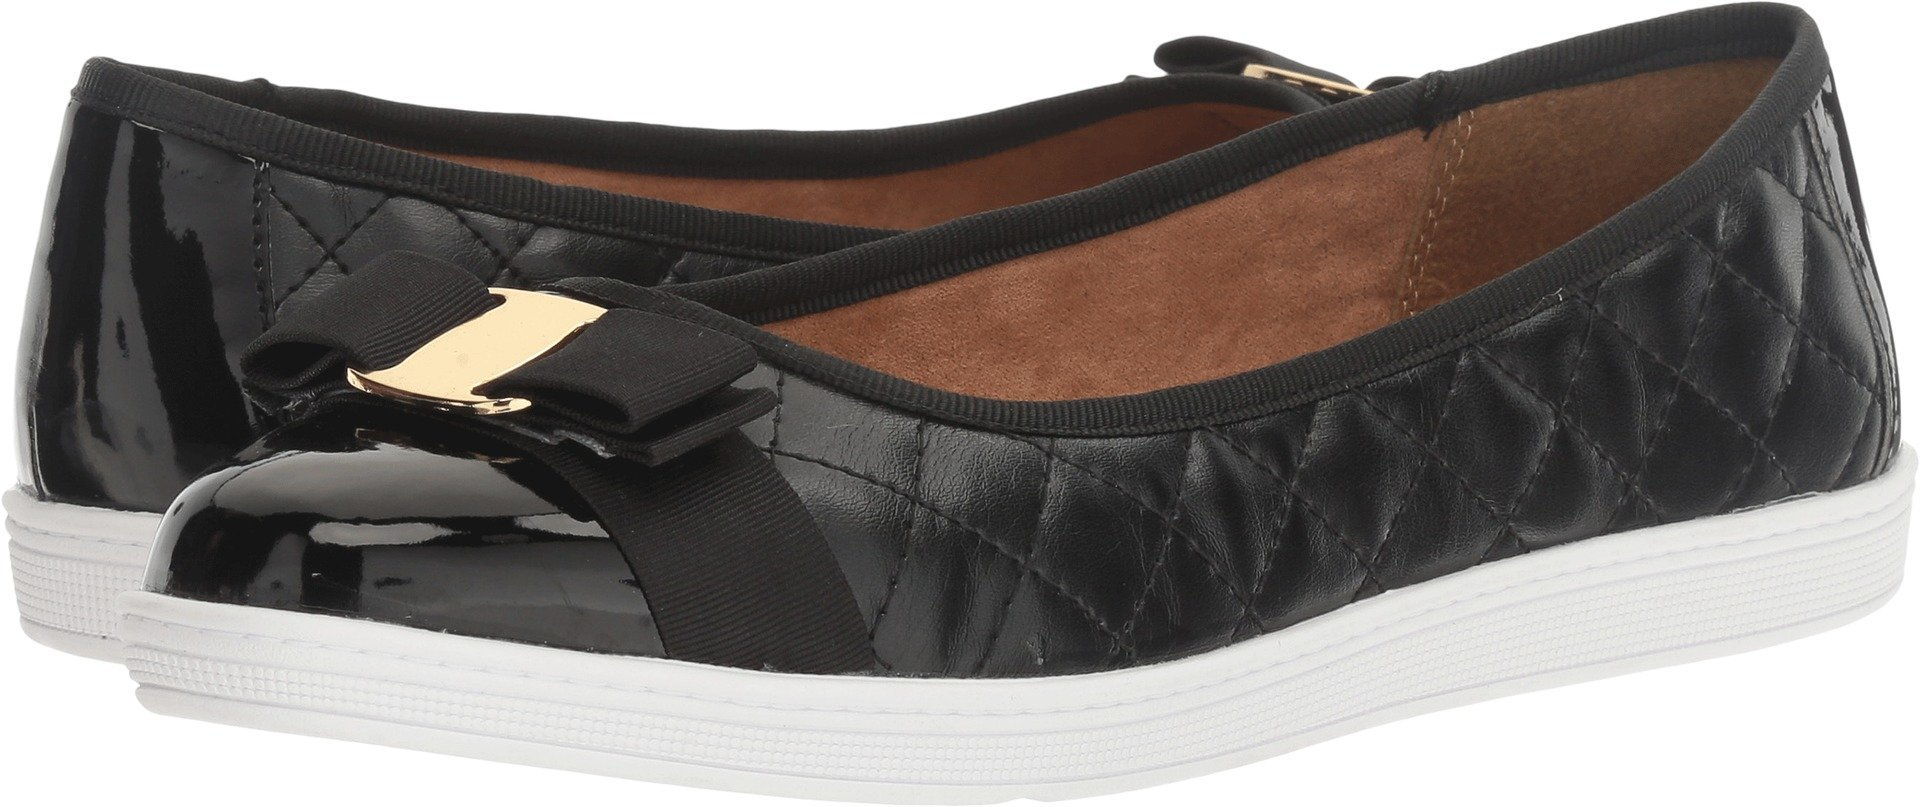 Soft Style by Hush Puppies Women's Faeth Flat, Black, 6 W US